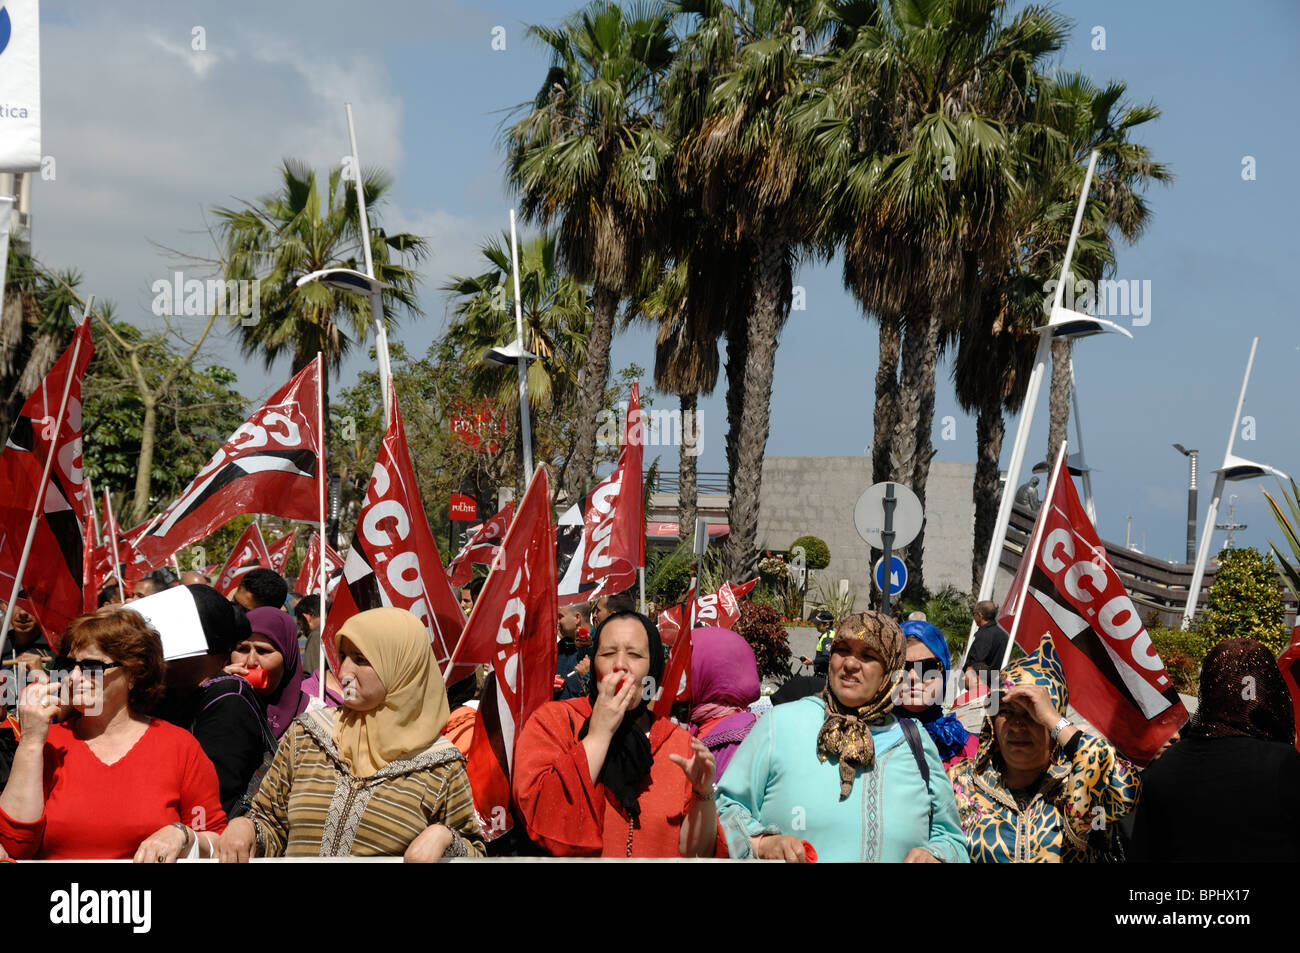 Spanish Ceuta Women of Immigrant Origin at May Day Workers Demonstration, Ceuta, Spain - Stock Image